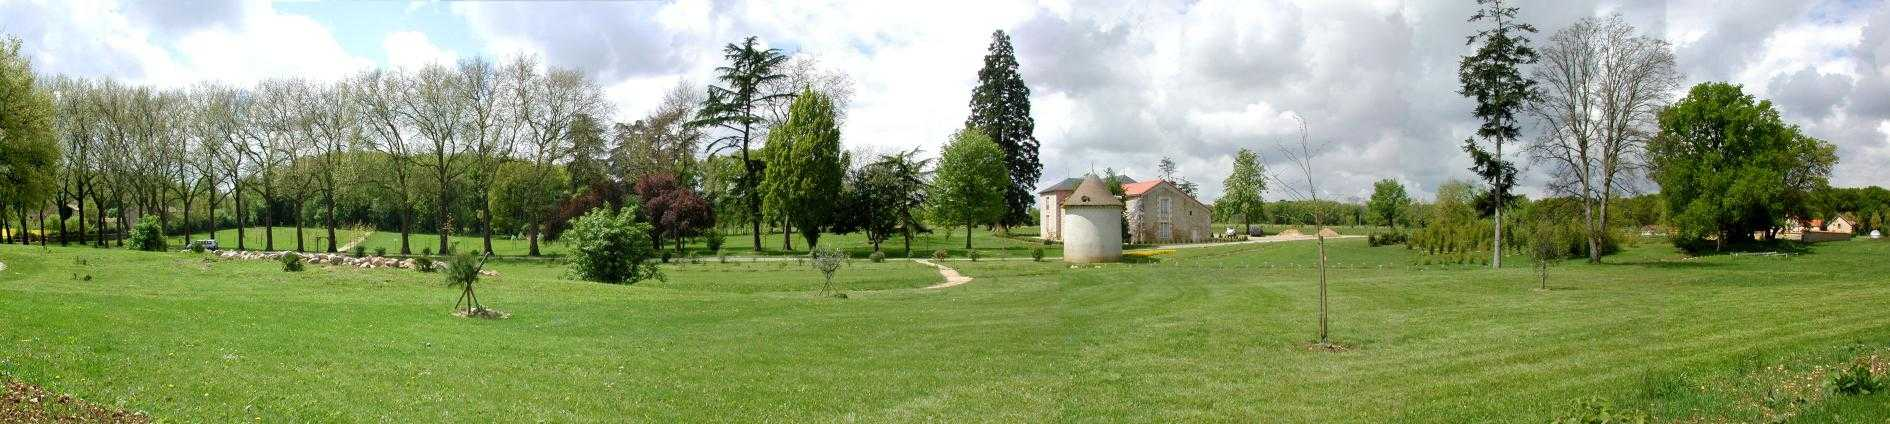 The Poitiers site